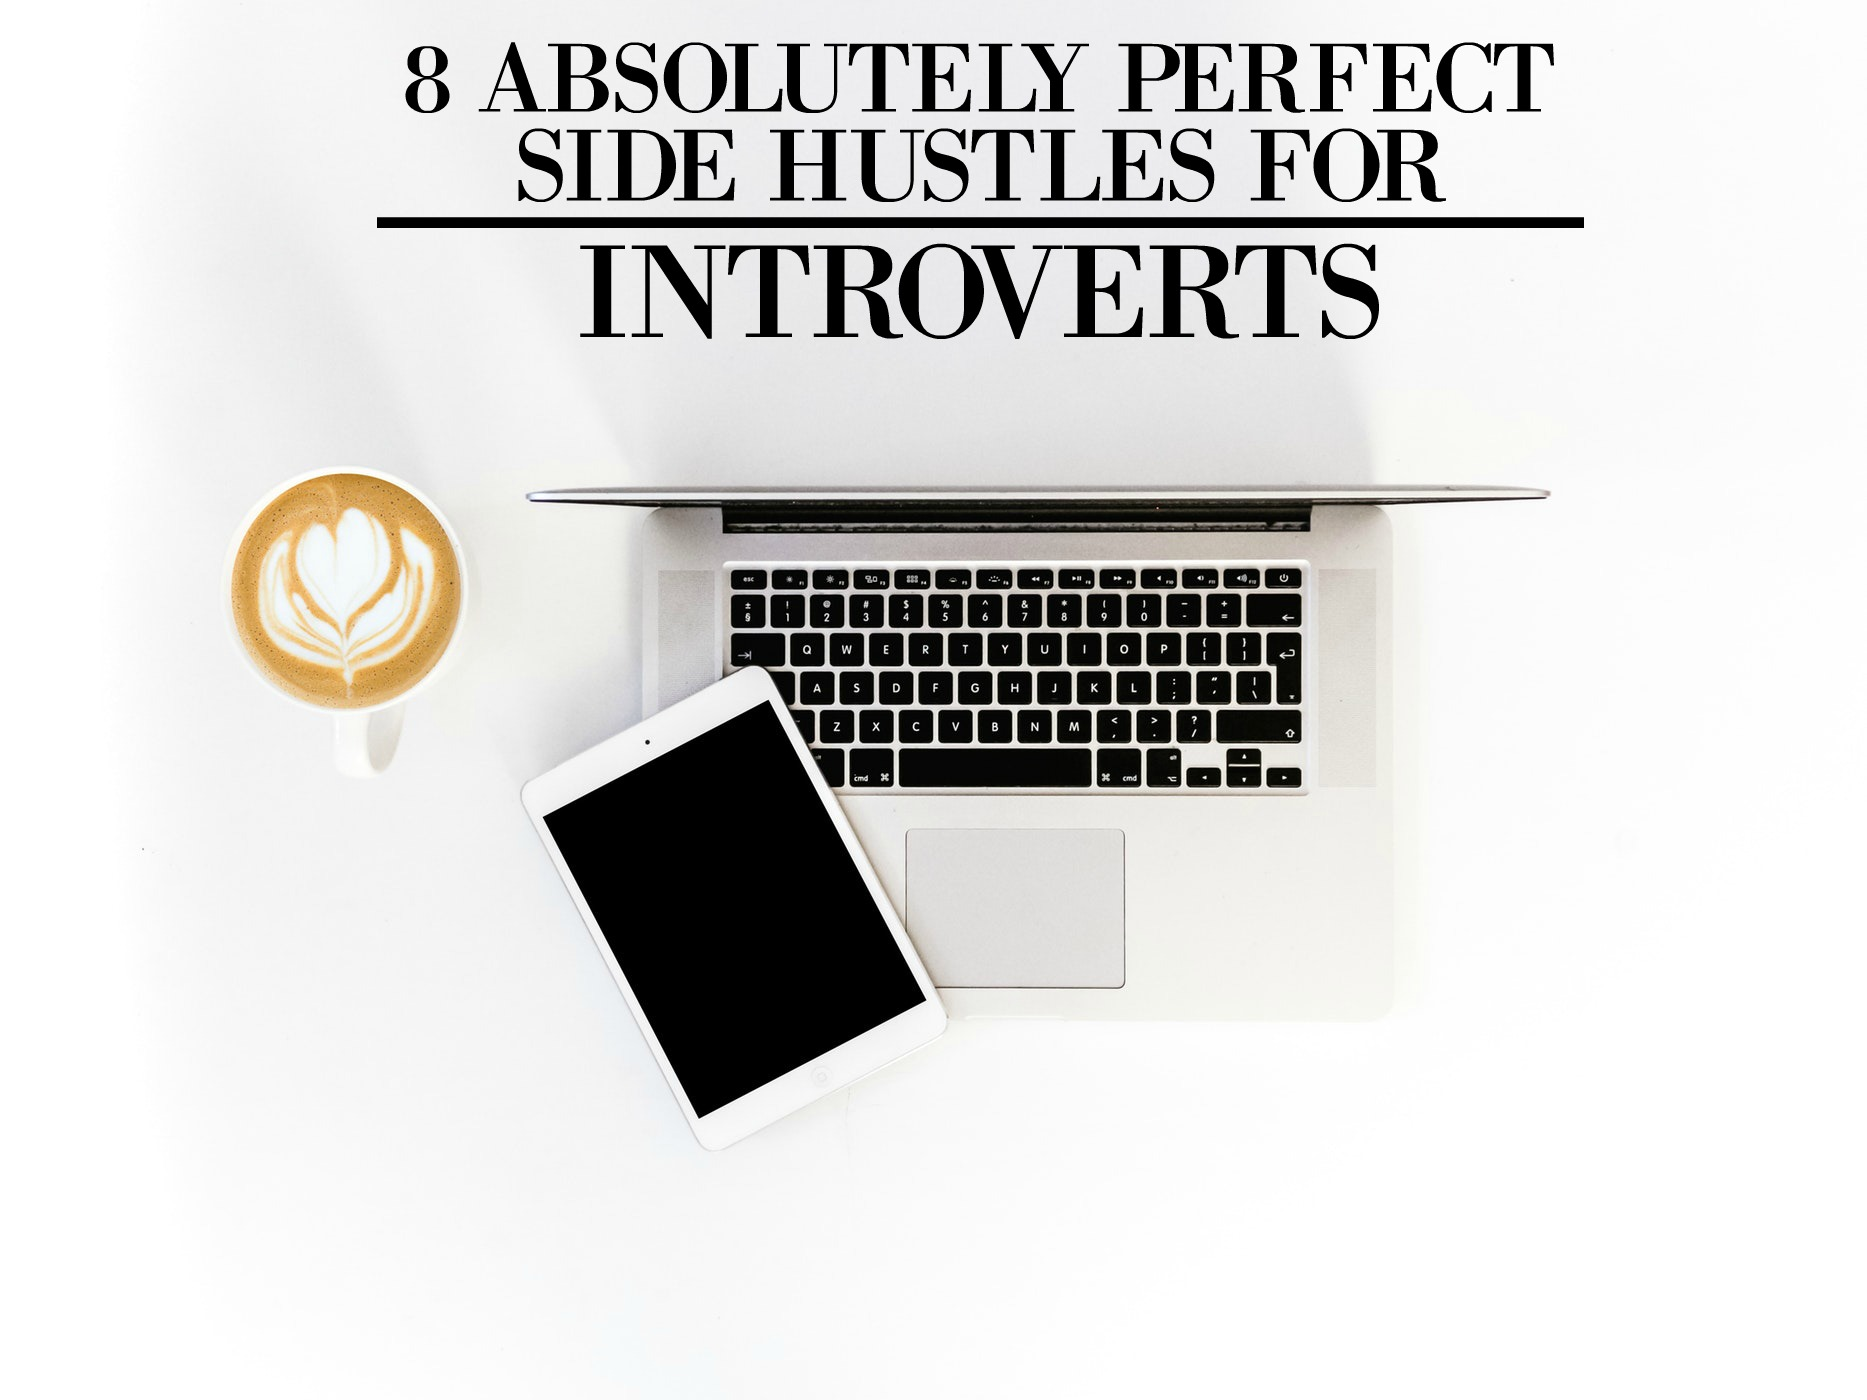 dating tips for introverts without money book reviews